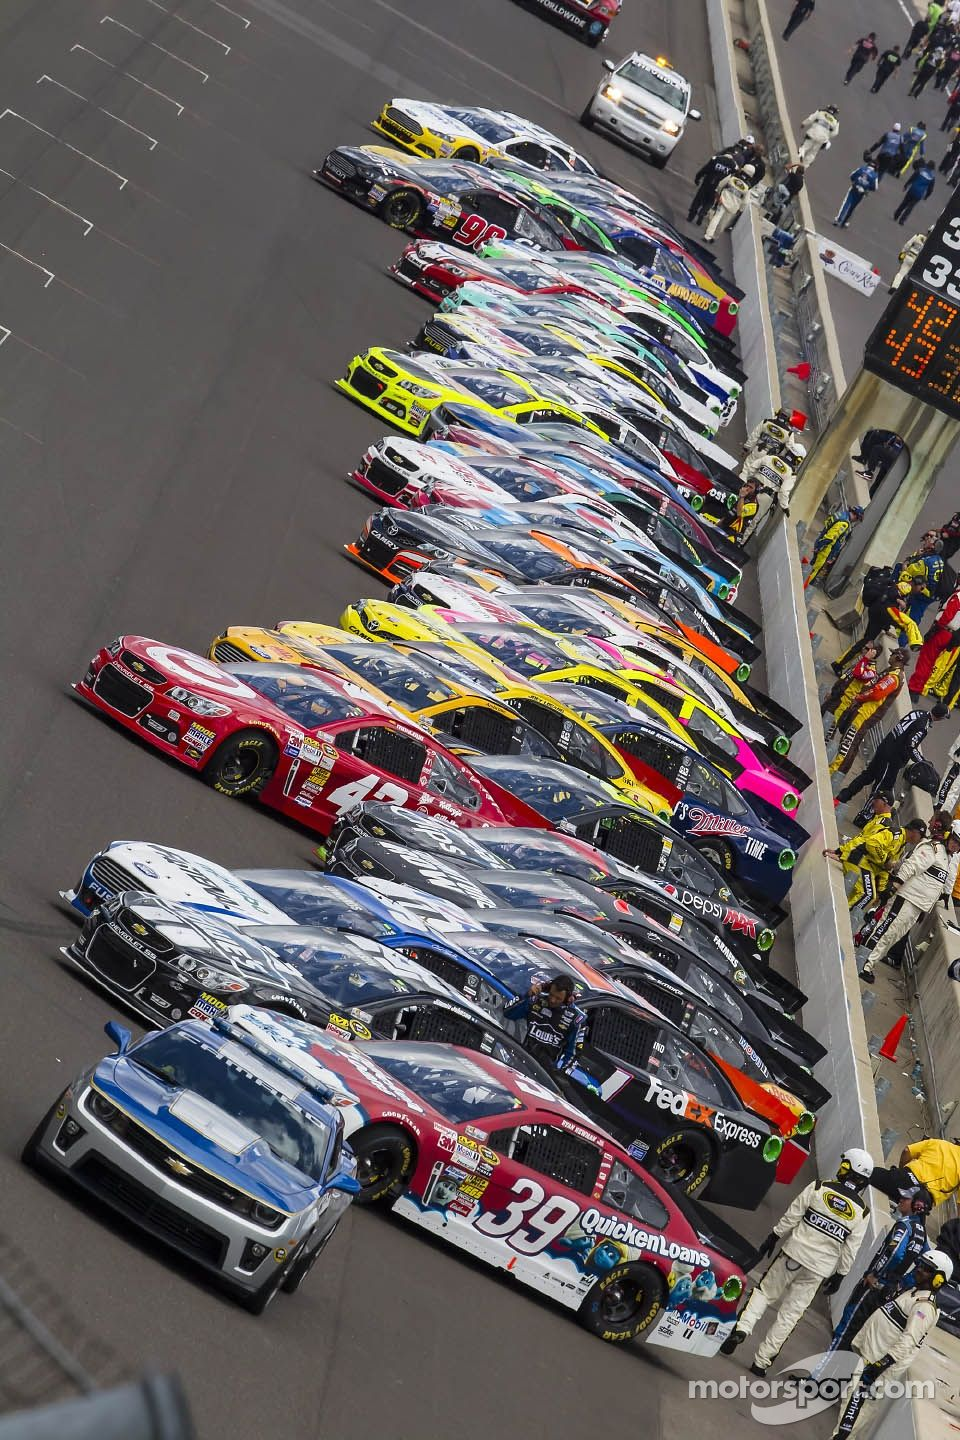 Starting grid at Indy                                                                                                                                                                                 More